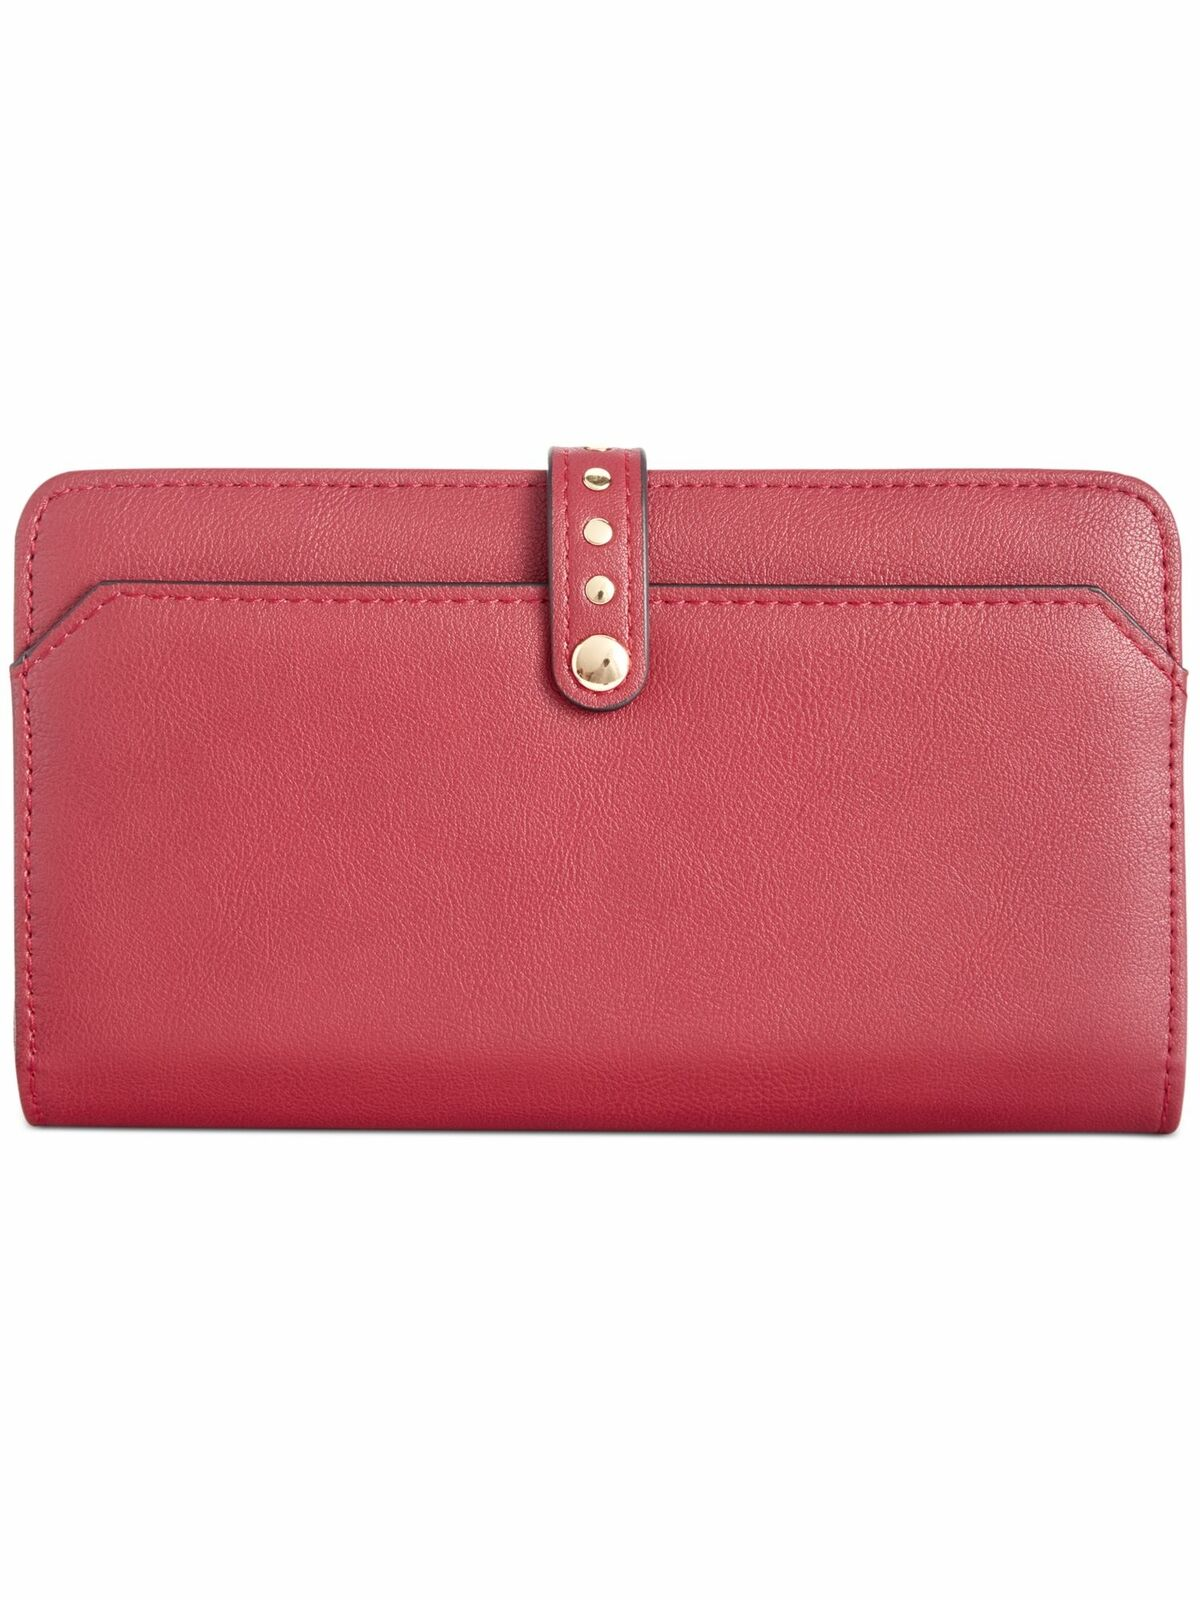 INC Women's Red Embellished Faux Leather Strapless Wallet